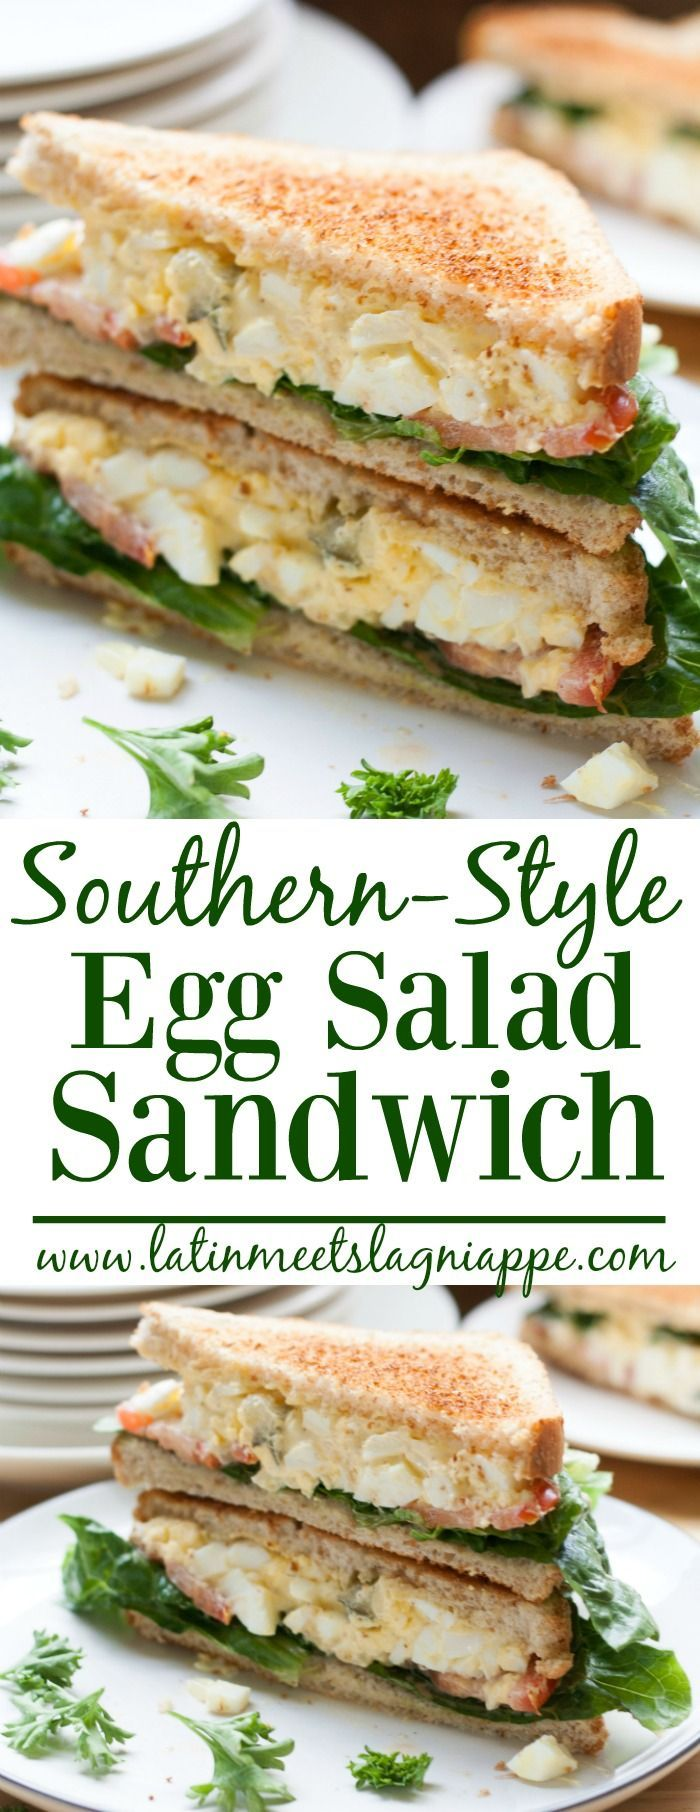 southern style egg salad sandwich egg salad sandwiches southern style ...